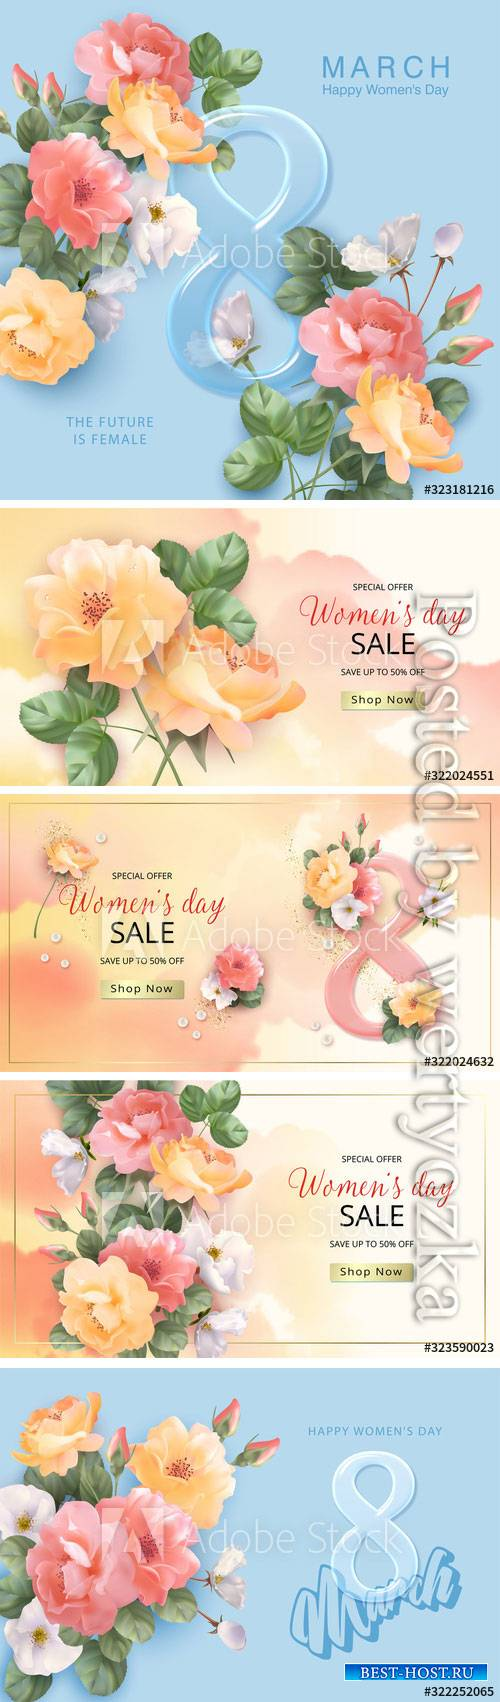 Vector banner March 8, floral background